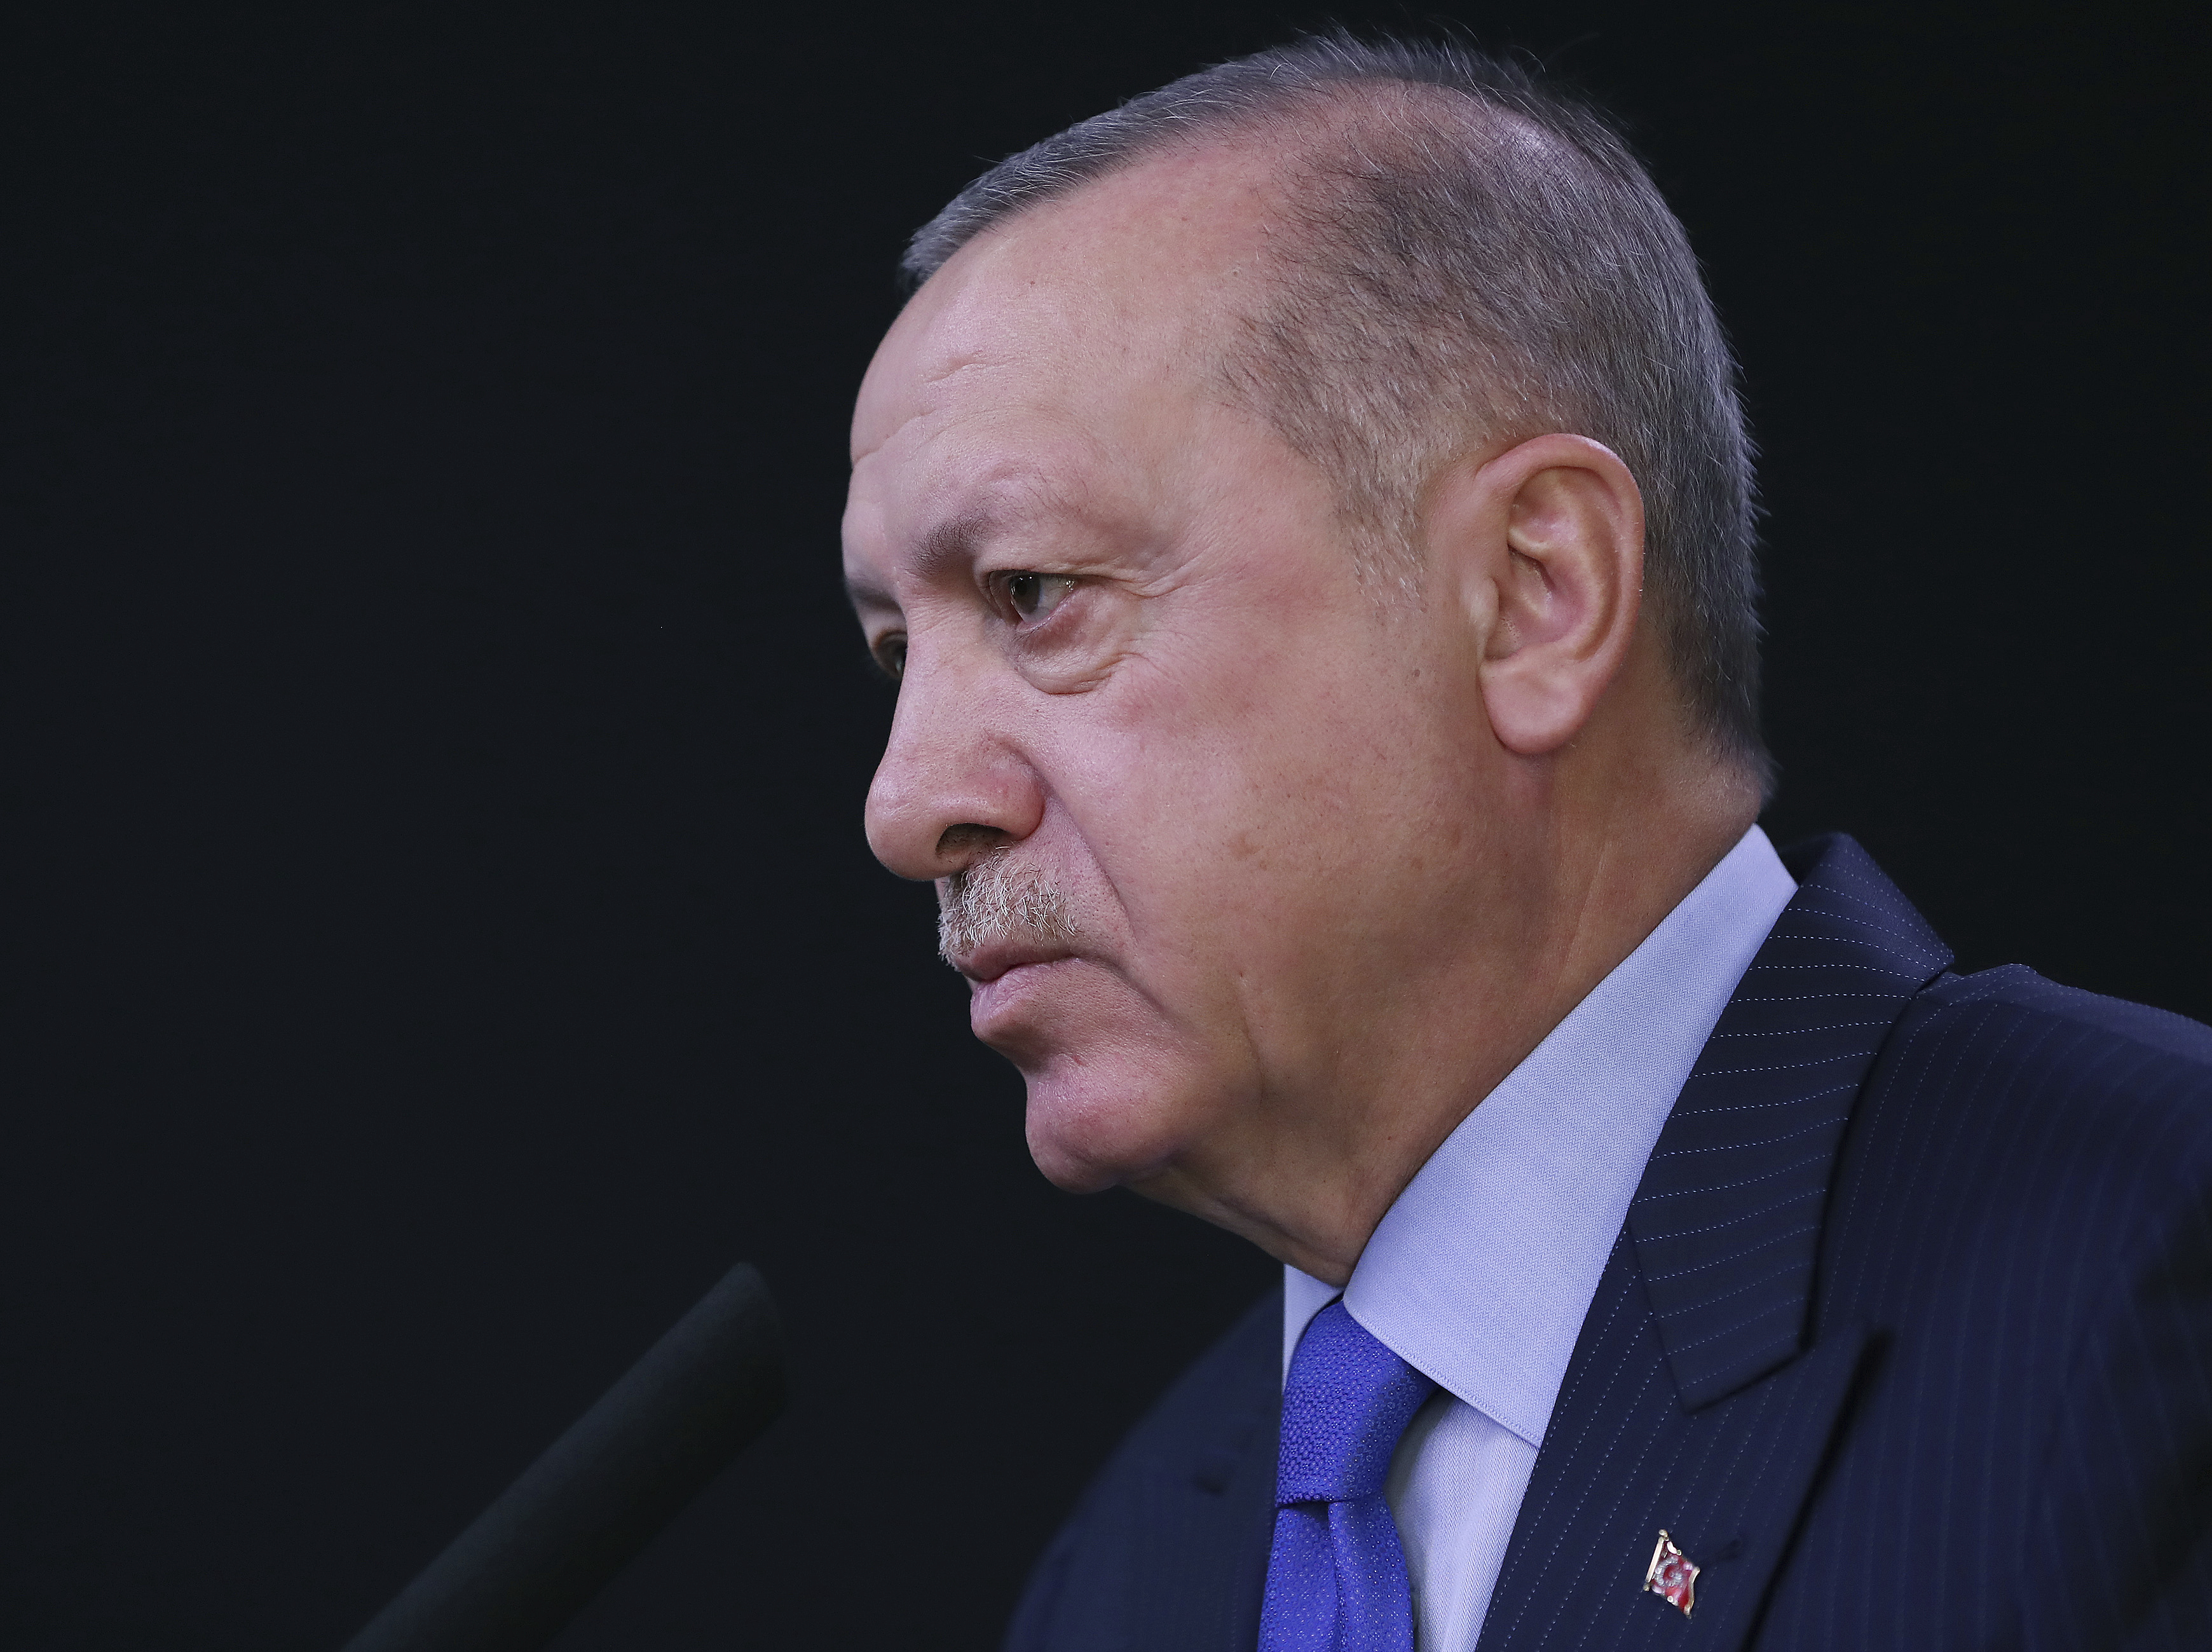 Angered at EU, Turkey threatens to release IS prisoners